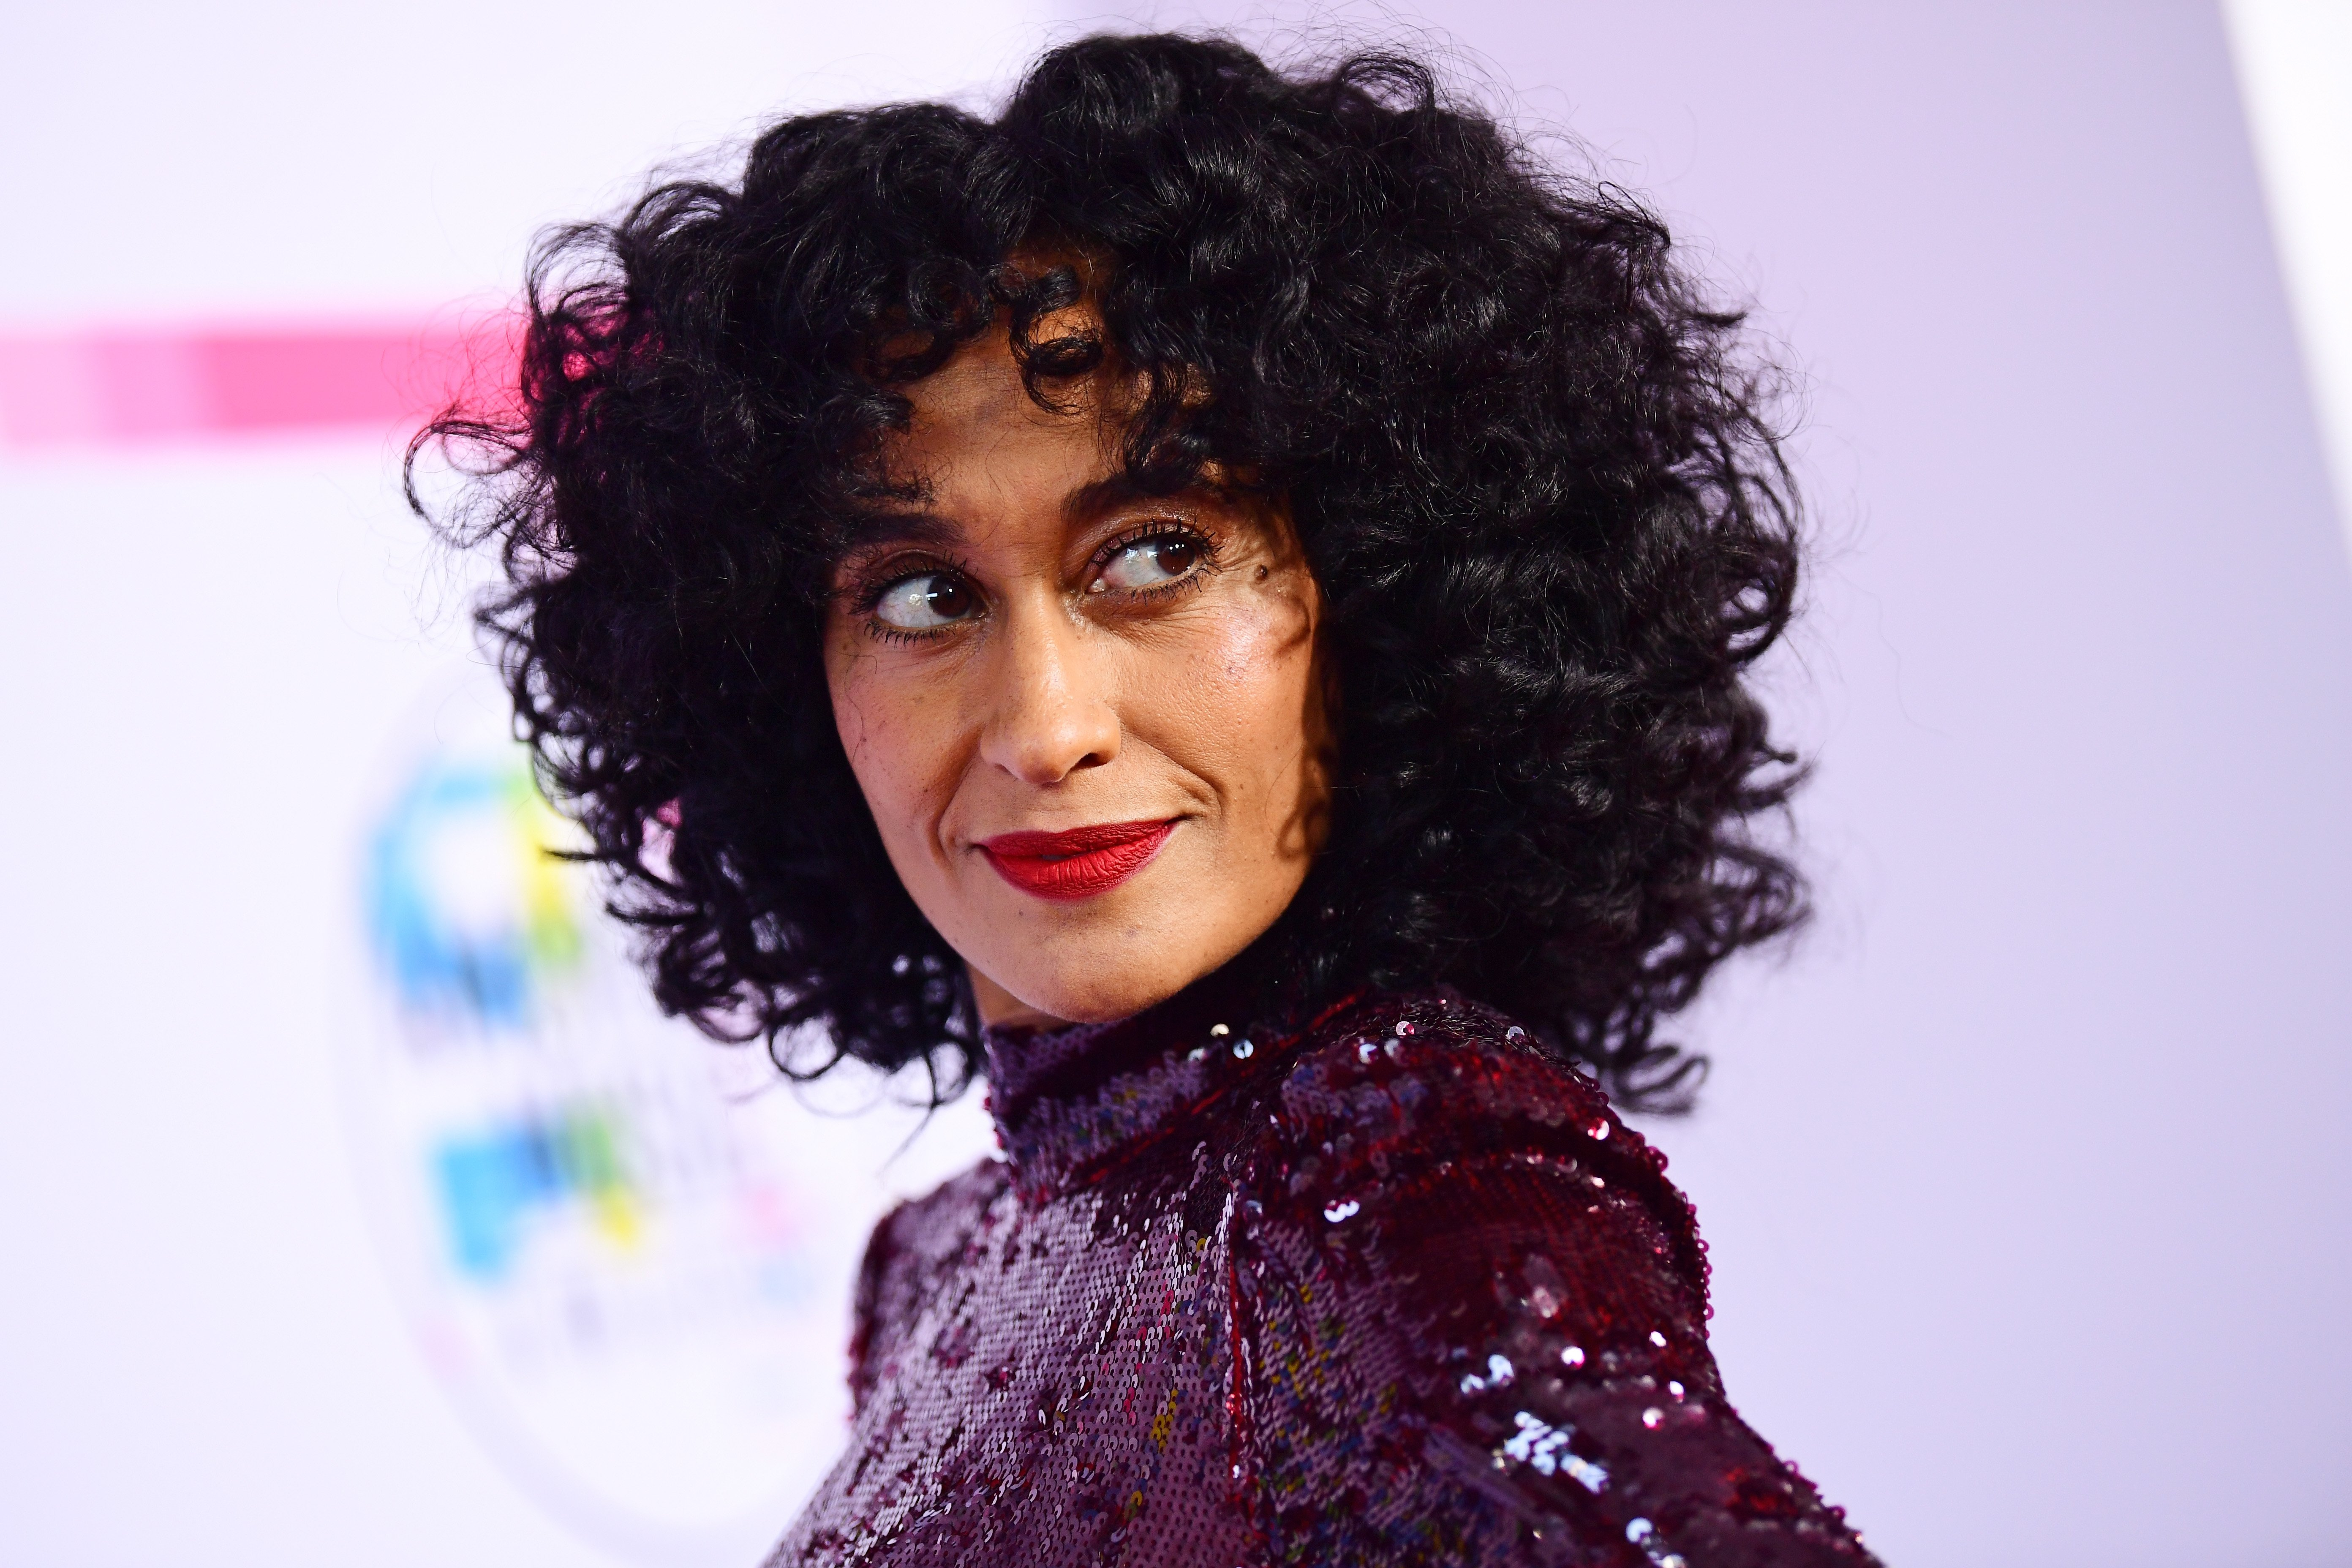 Tracee Ellis Ross at the American Music Awards on Nov. 19, 2017 in California | Photo: Getty Images